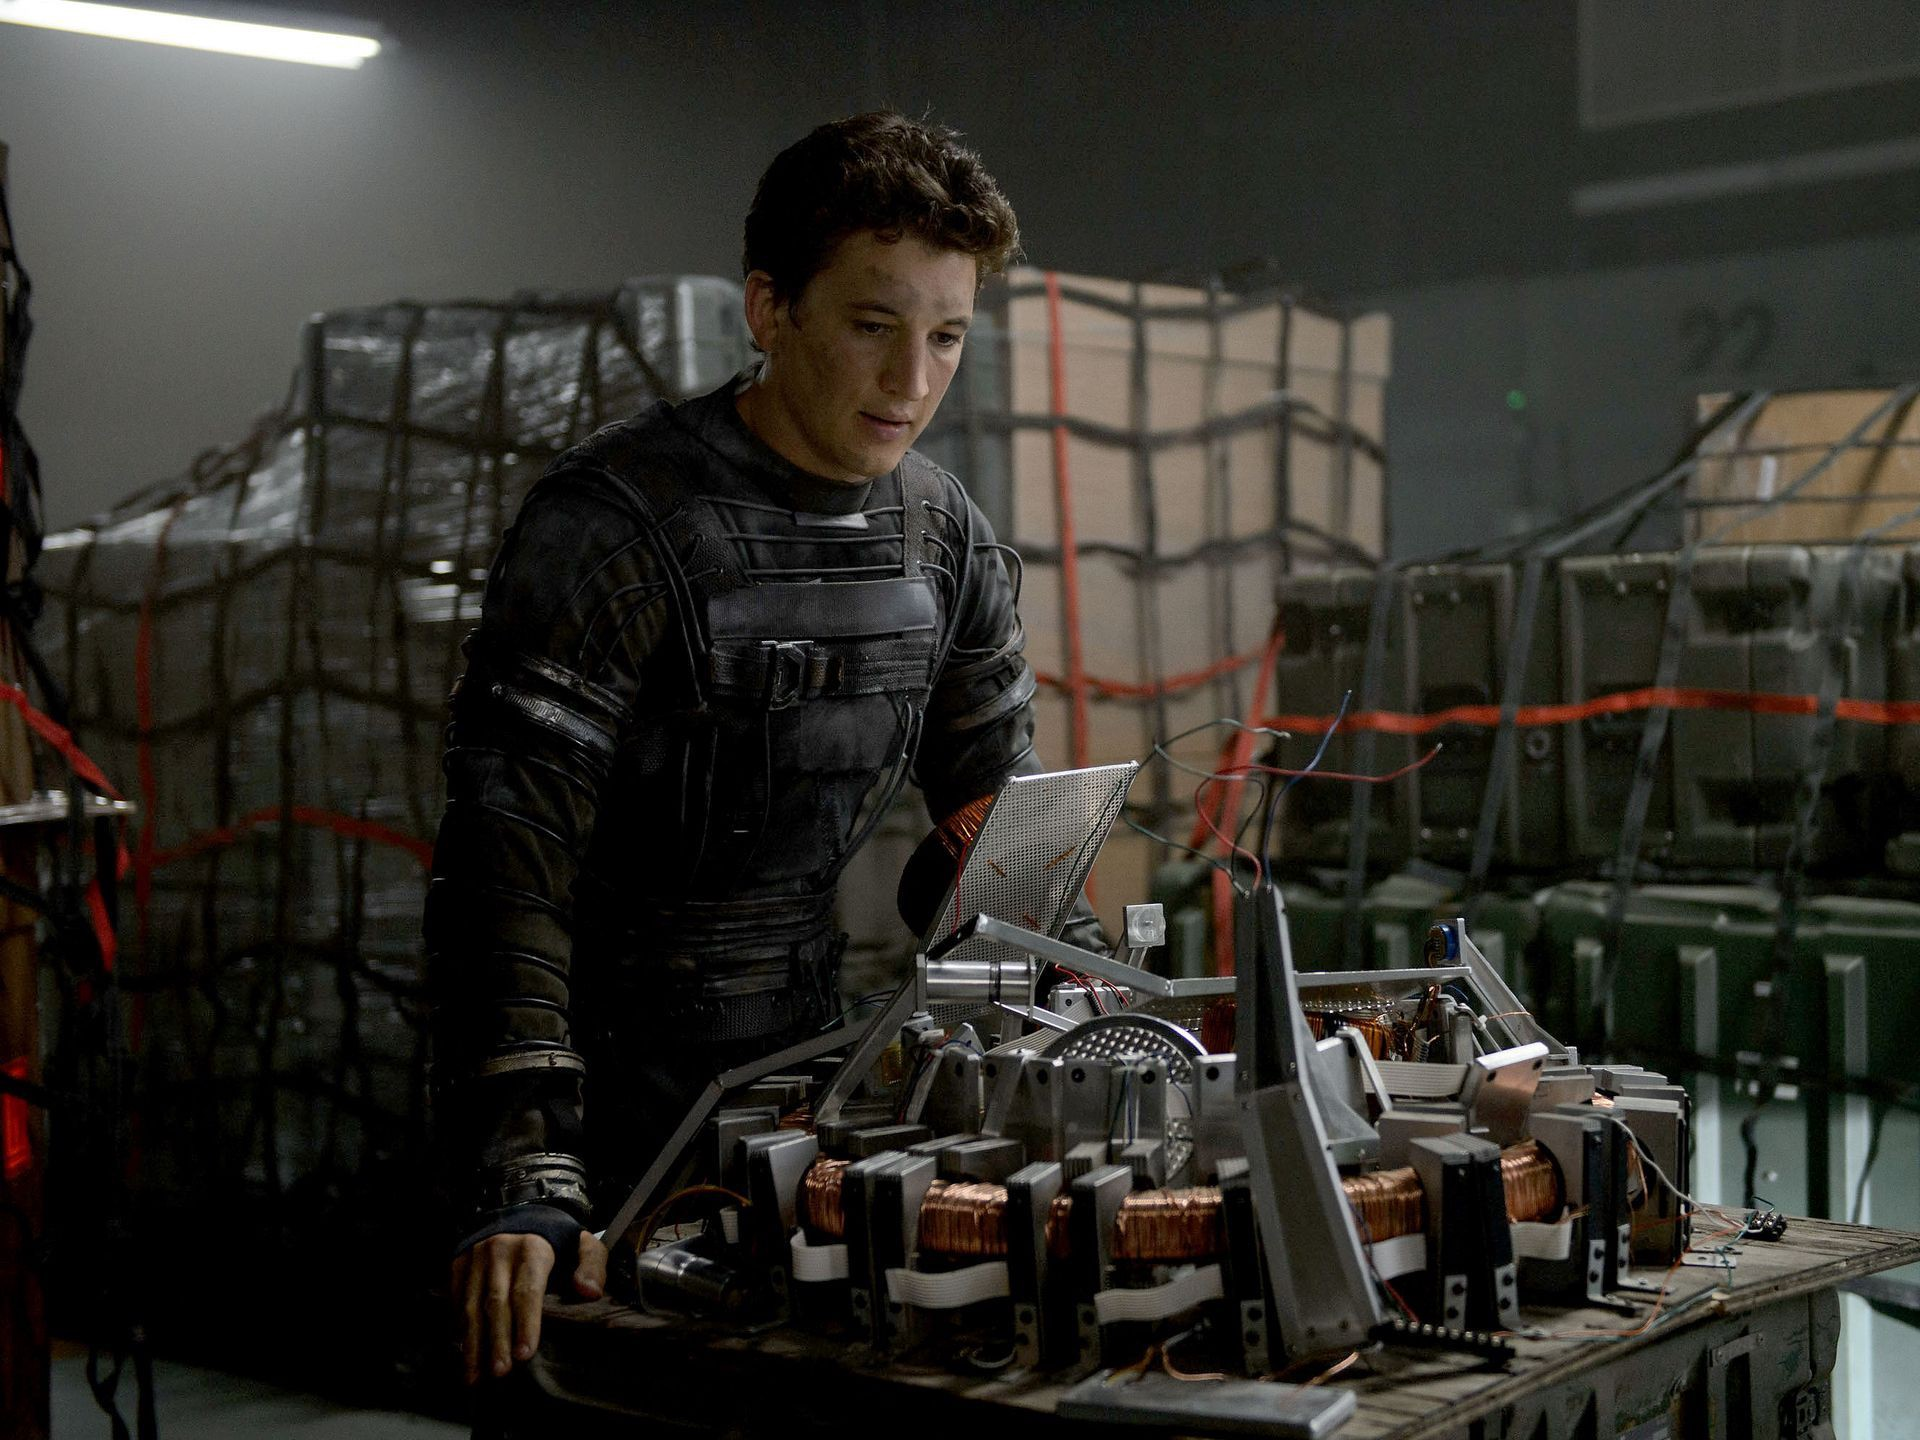 Miles Teller staring intensely as Reed Richards in Fantastic Four (2015)